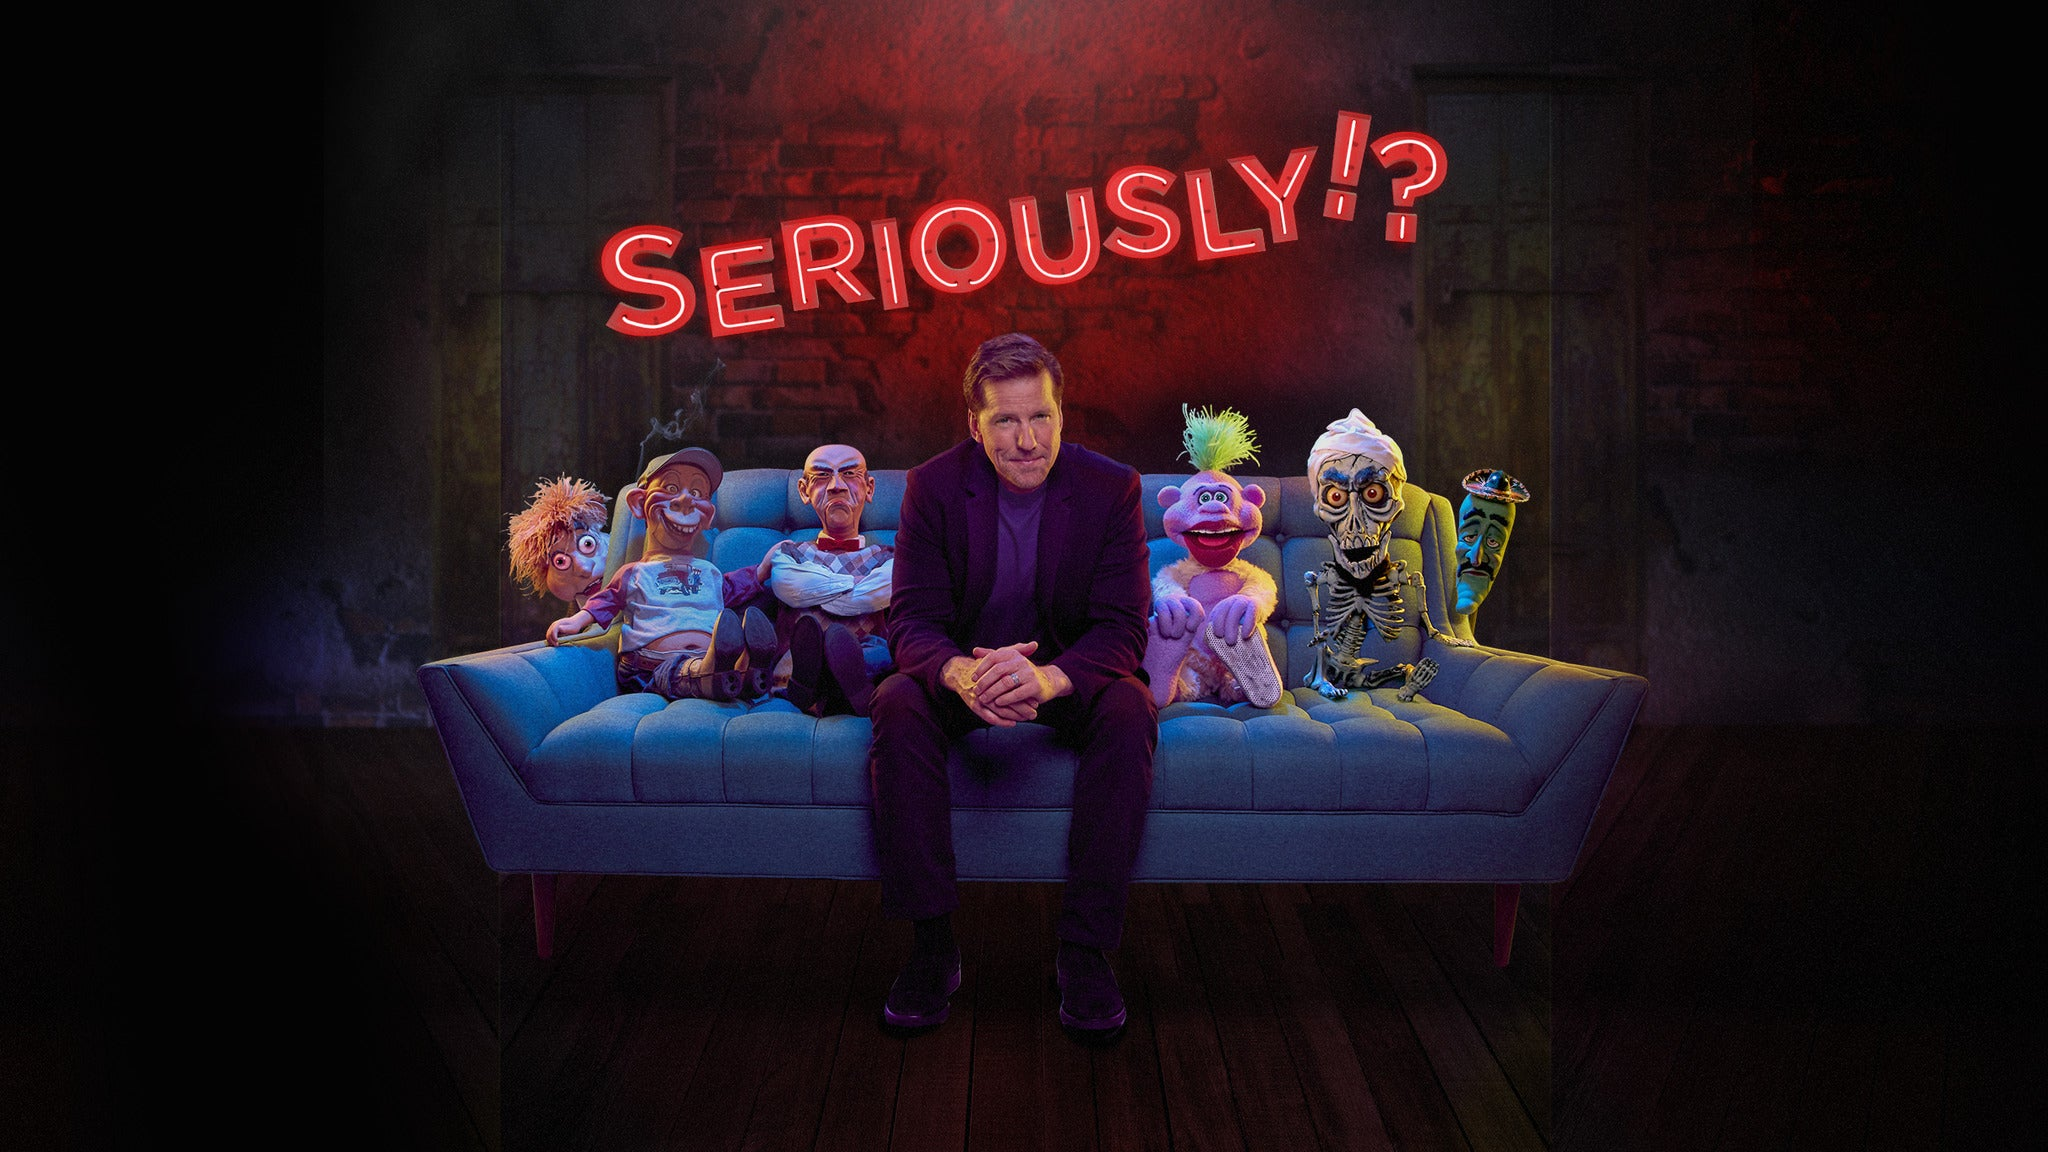 Jeff Dunham: Seriously at Toyota Arena